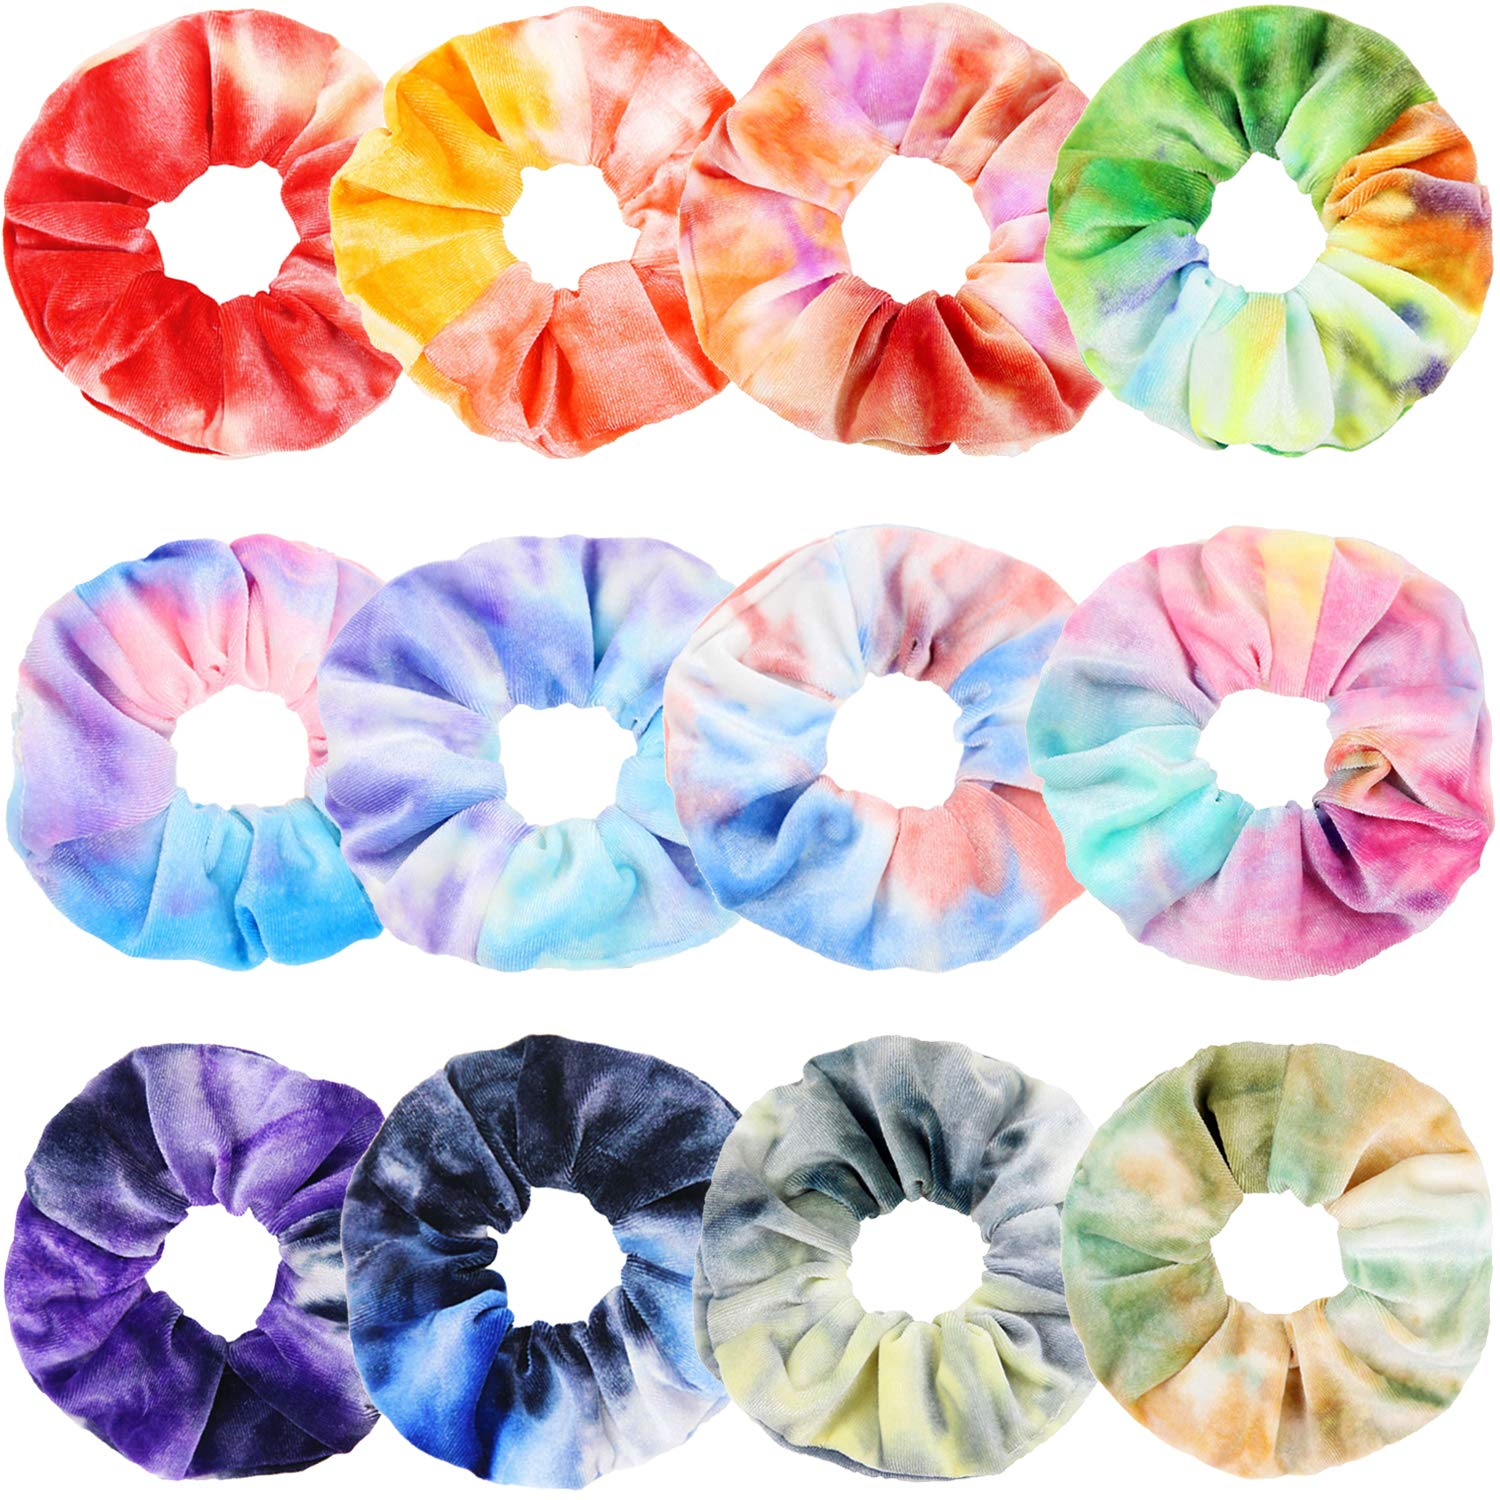 gifts-for-14-year-old-girls-scrunchies